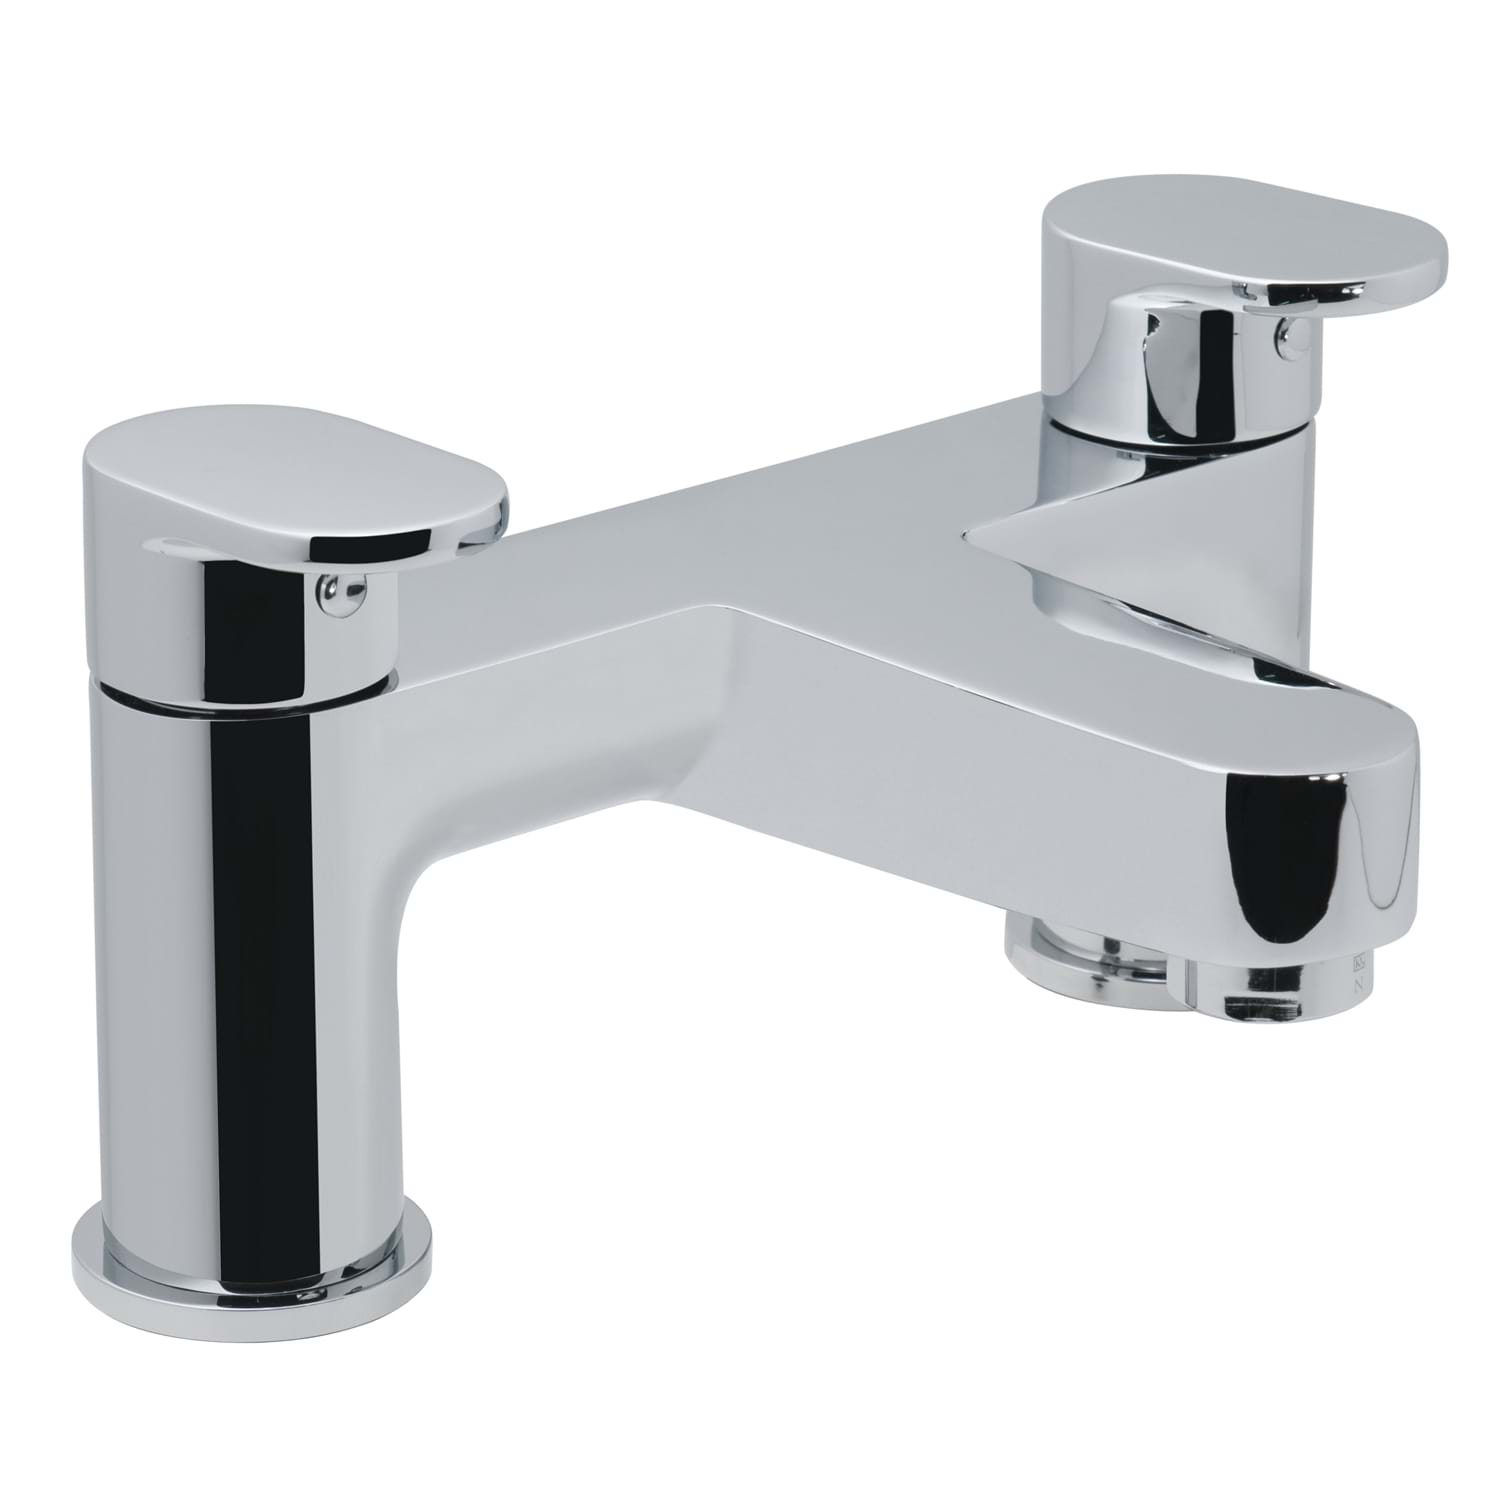 Image of Casa Neon 2 Hole Deck Mounted Bath Filler, Chrome